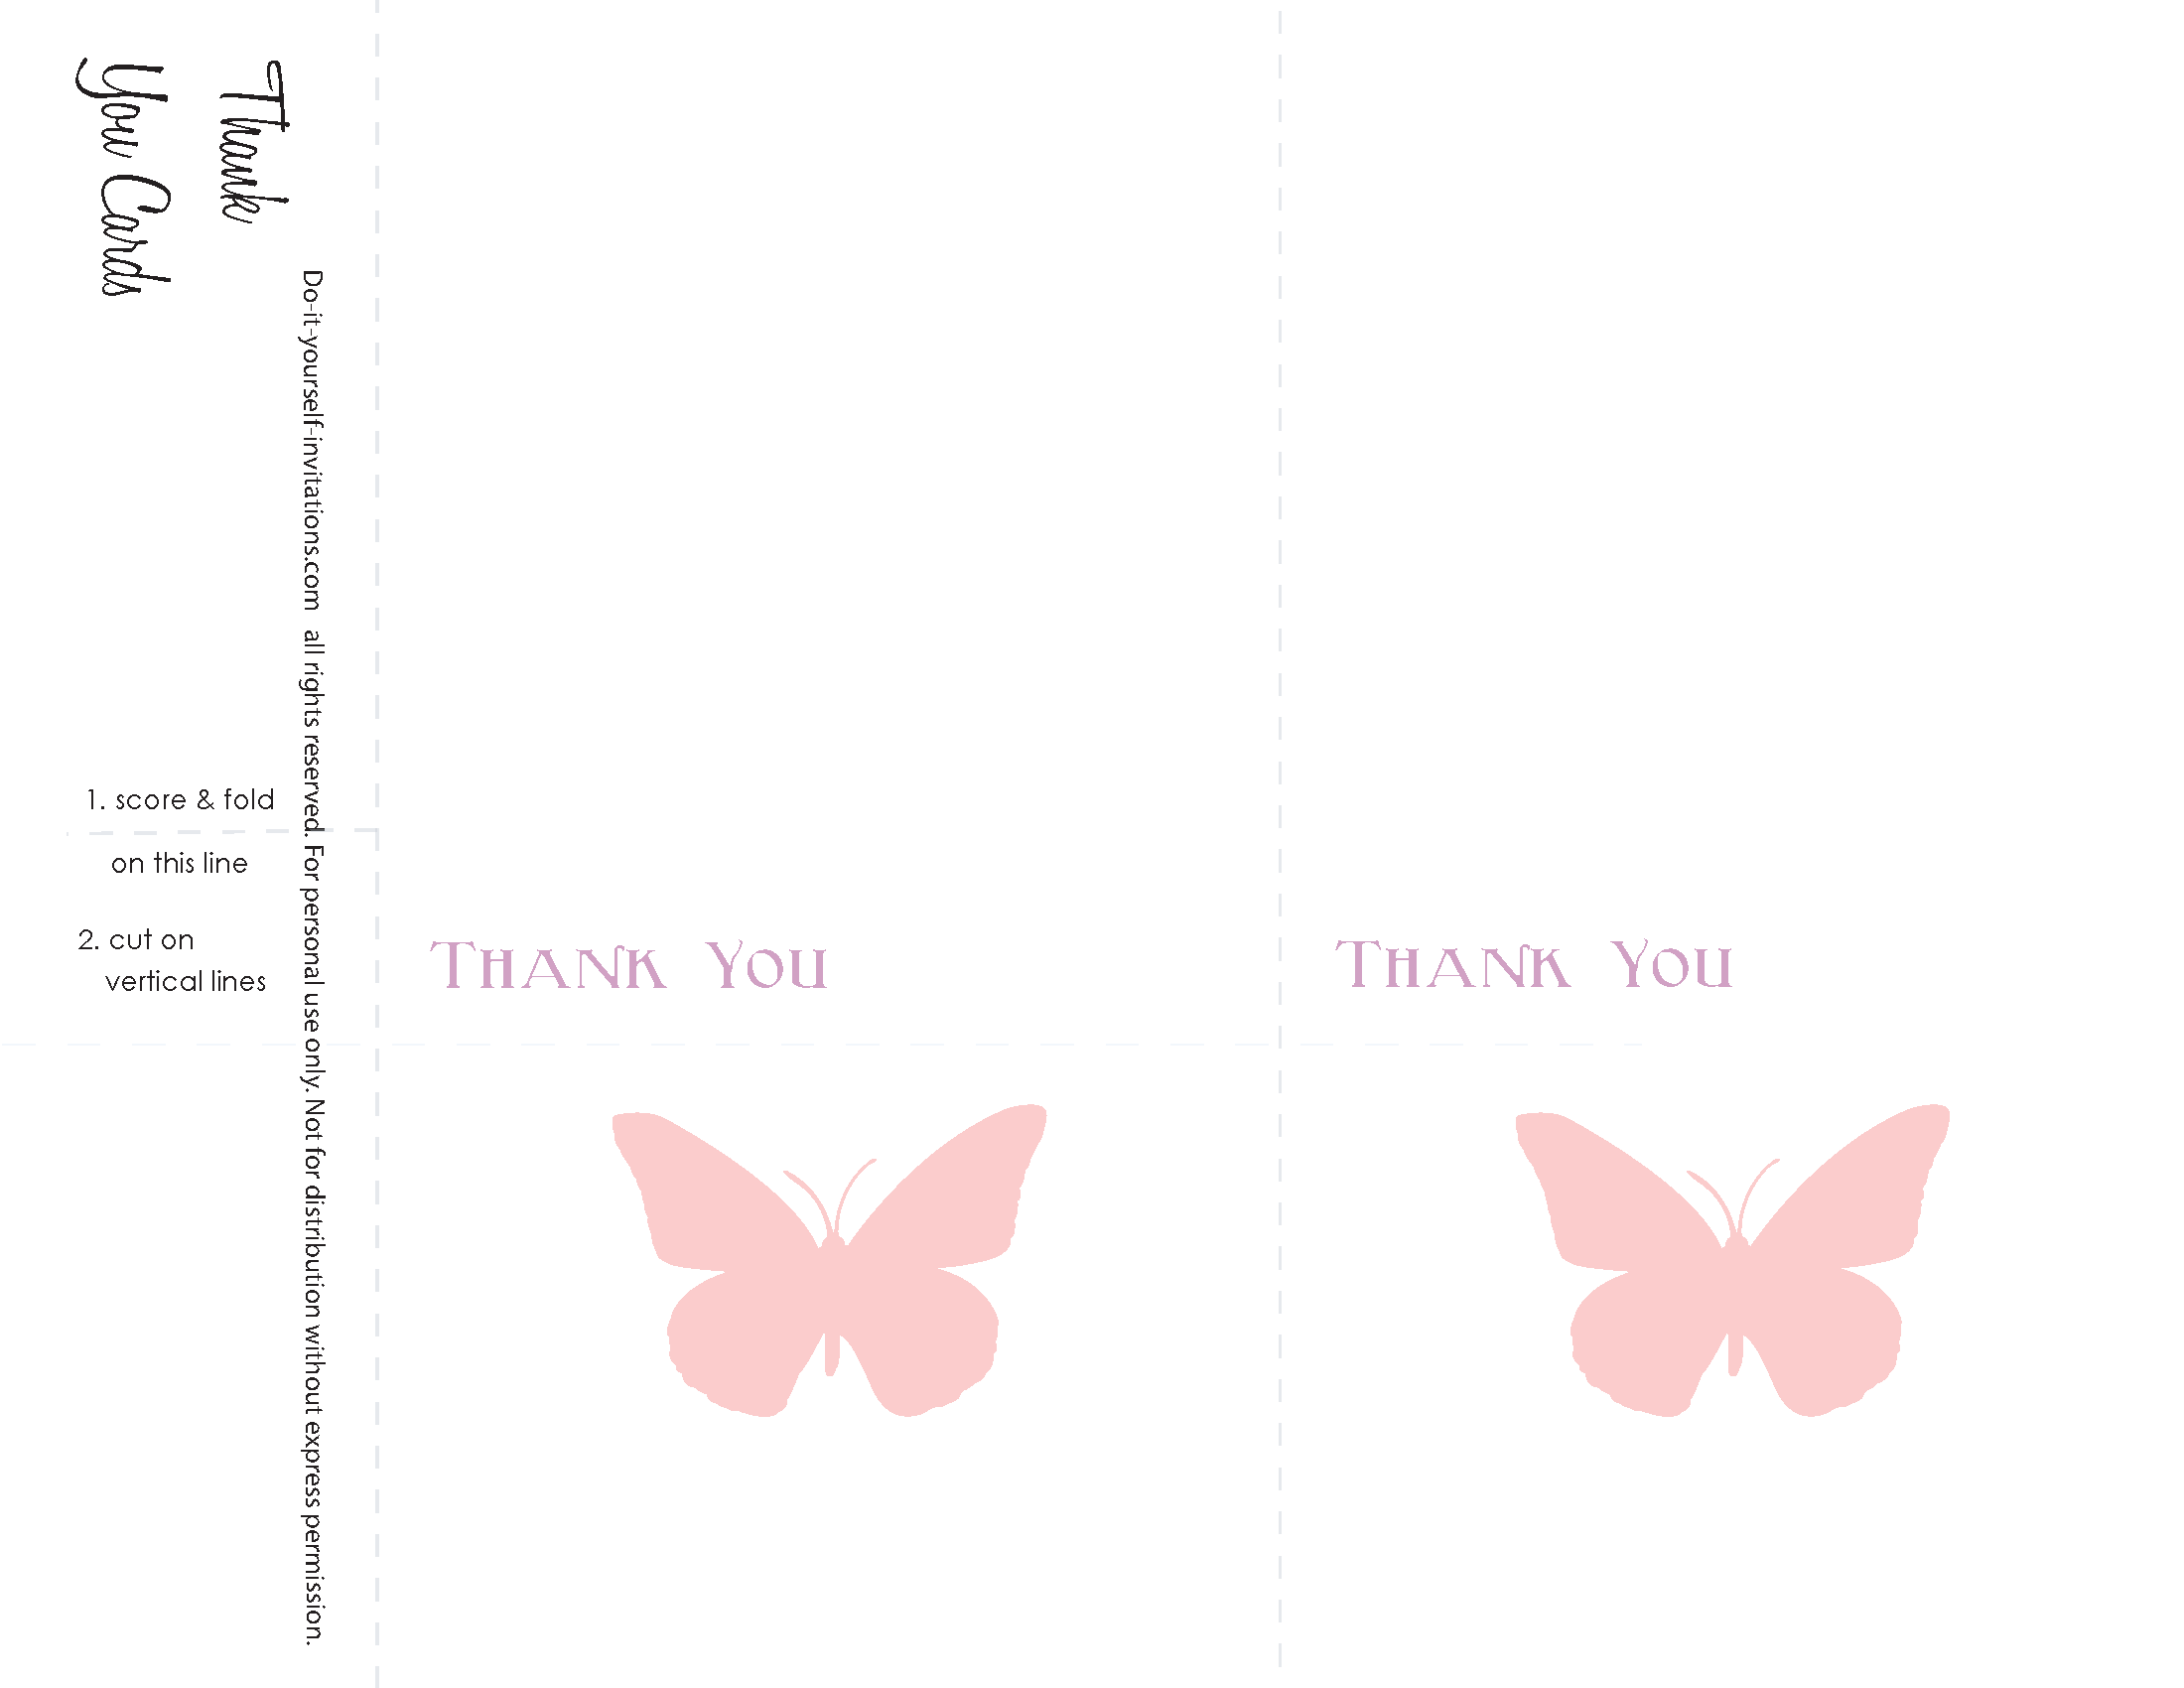 Thank You Cards. Butterfly Wedding Invitations: Peach and Lavendar ...